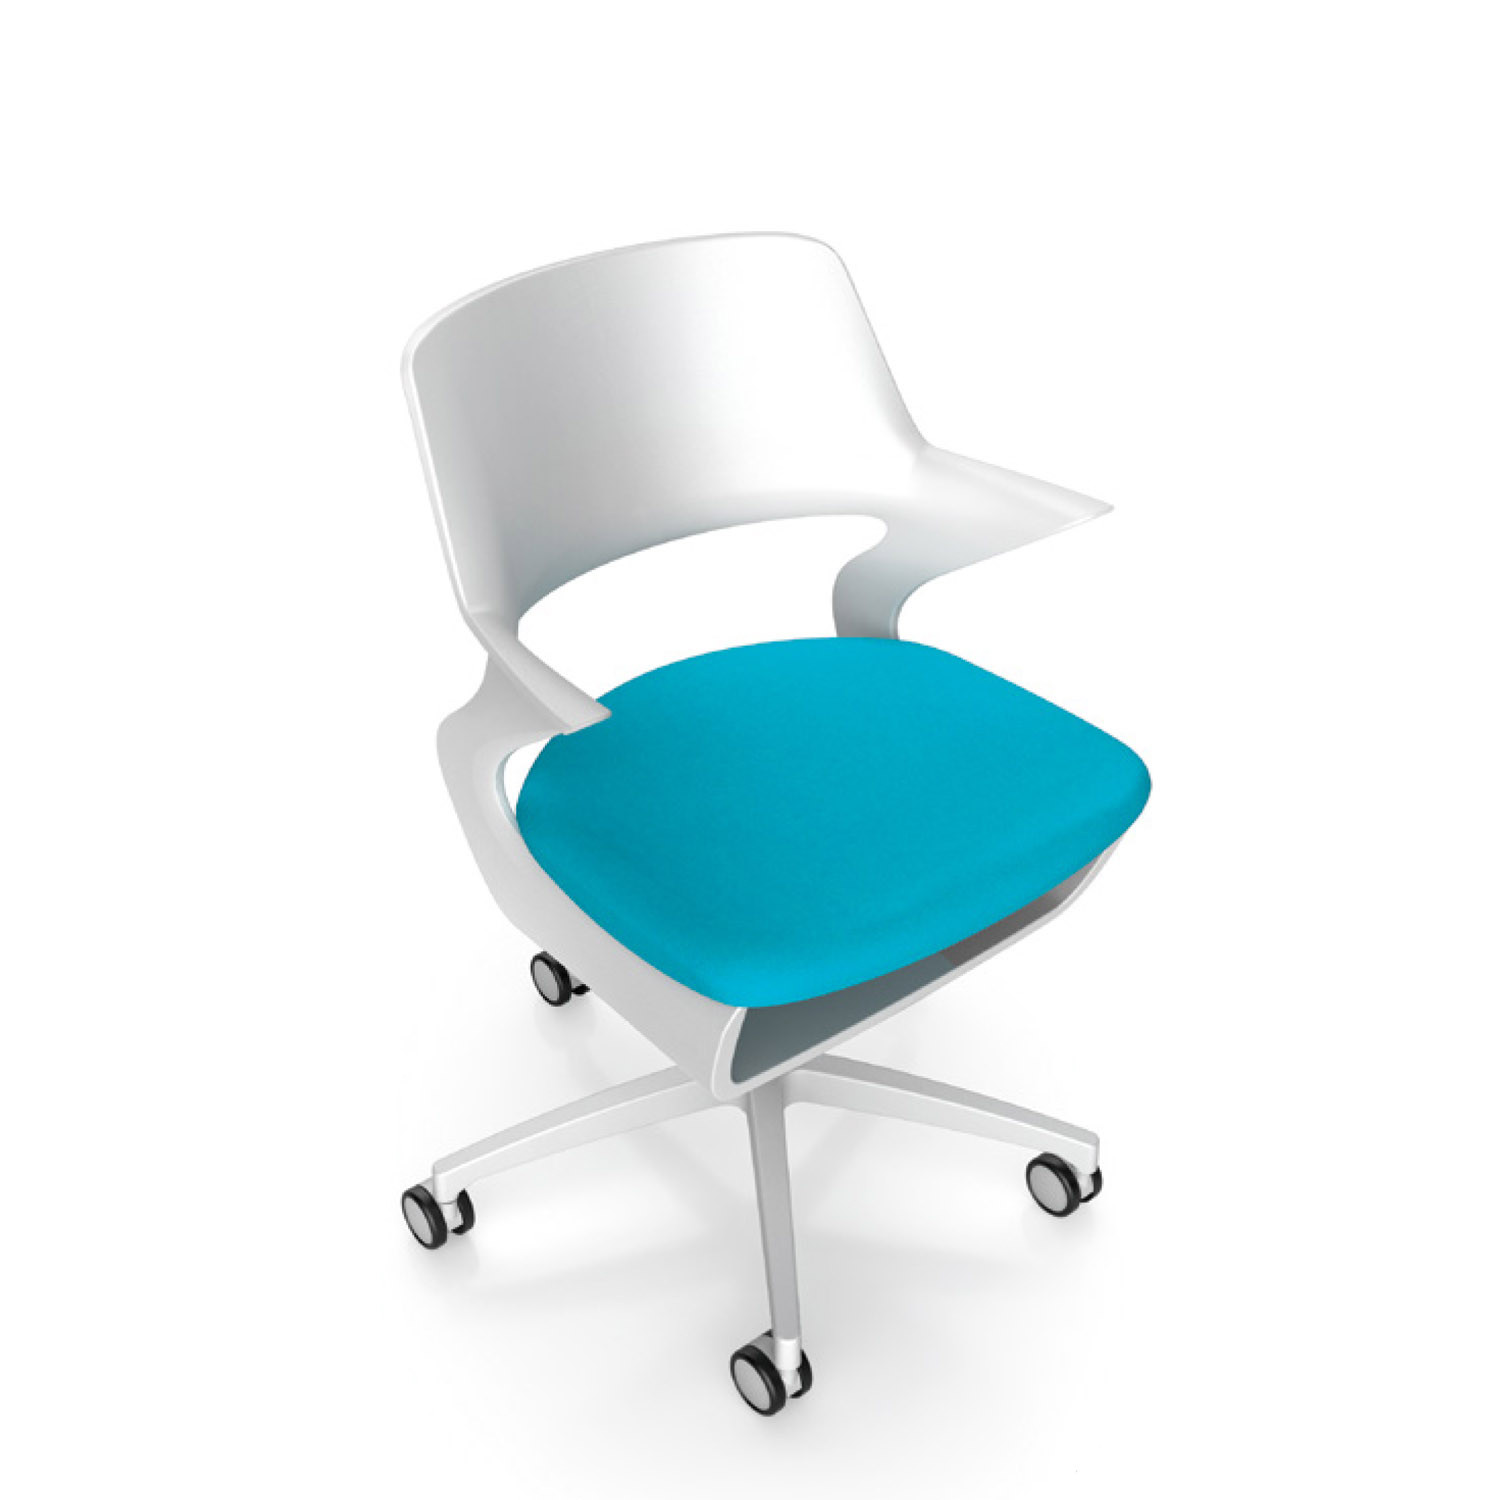 Sharko Office Swivel Chair by Ballendat